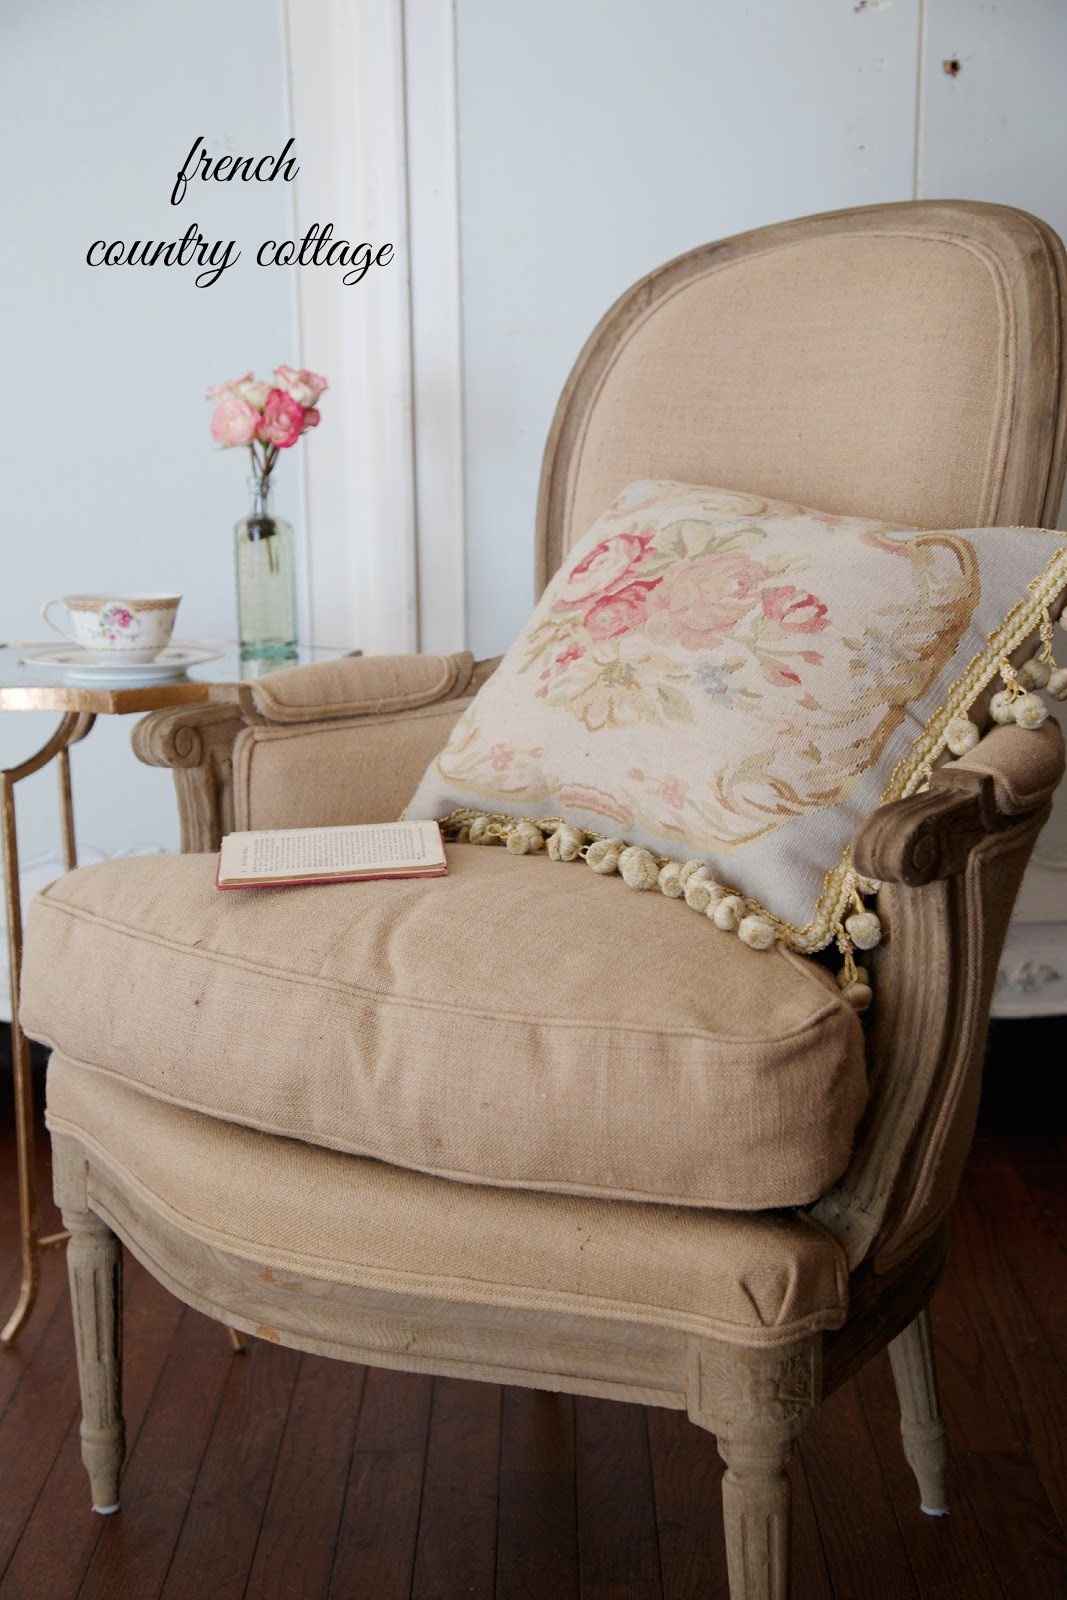 french style chairs french country cottage. Black Bedroom Furniture Sets. Home Design Ideas